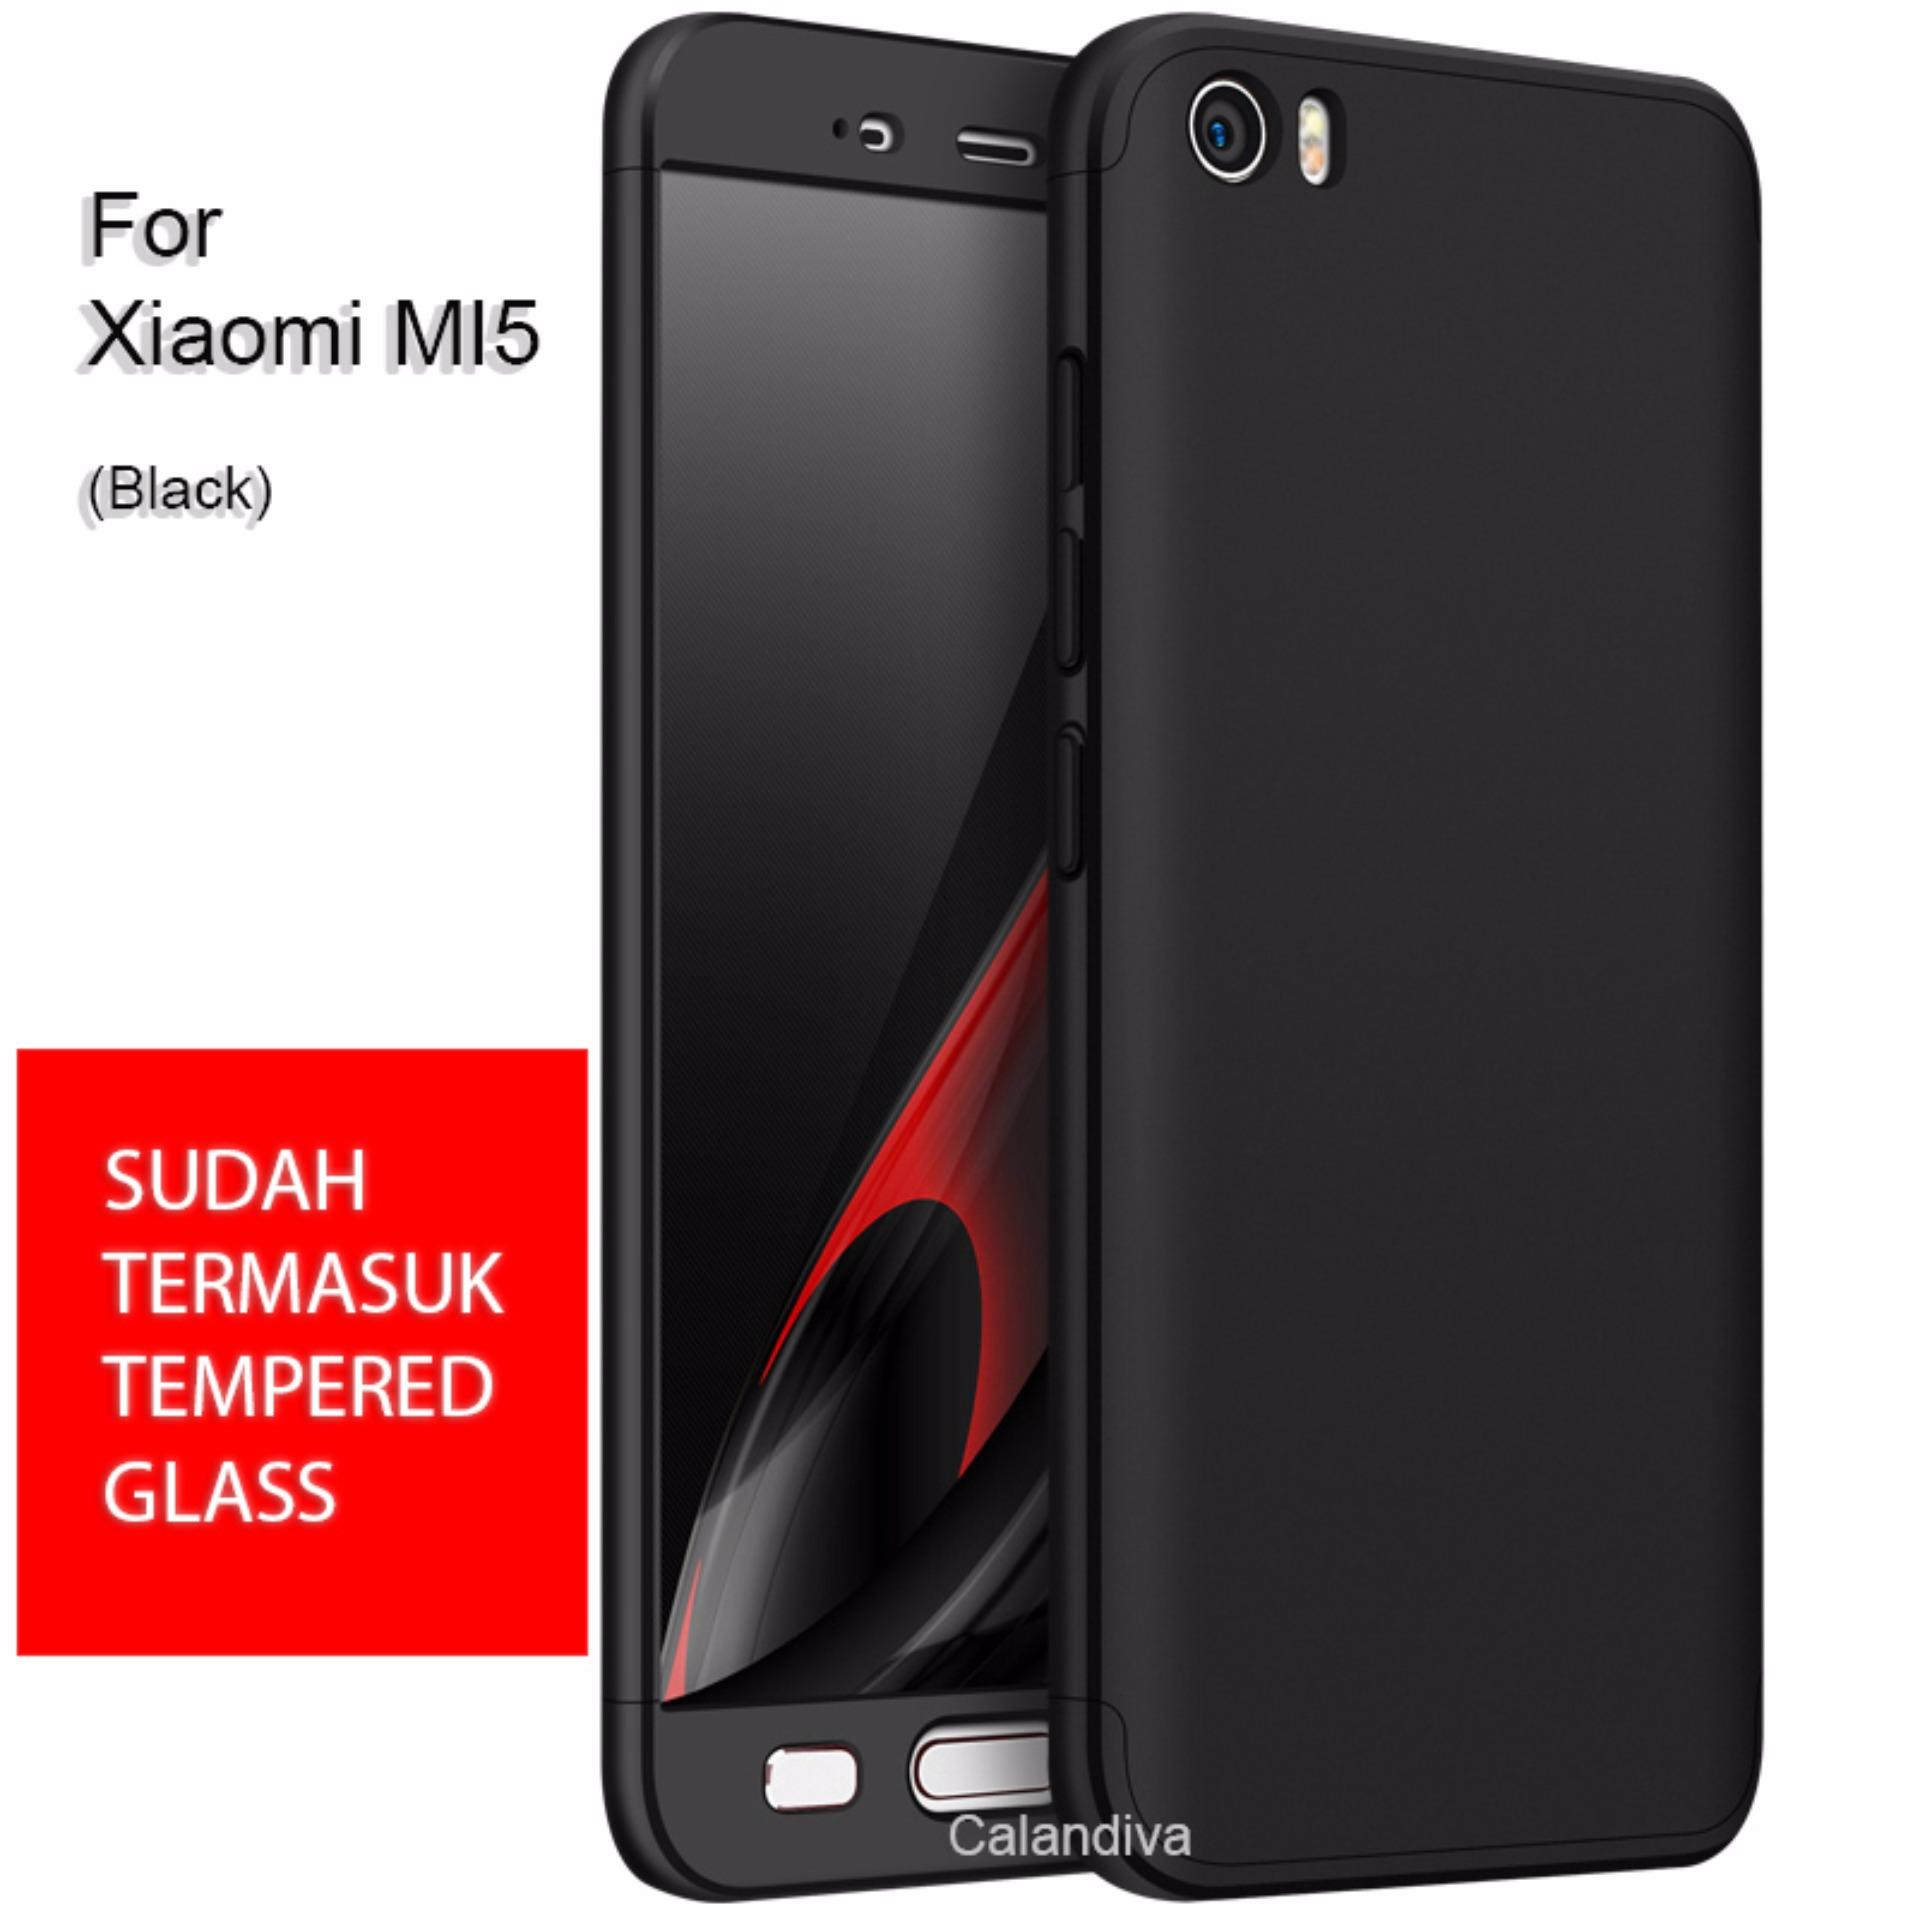 Calandiva Premium Front Back 360 Degree Full Protection Case With Samsung Galaxy A6 Plus 2018 60 Inch Tg Merah For Xiaomi Mi 5